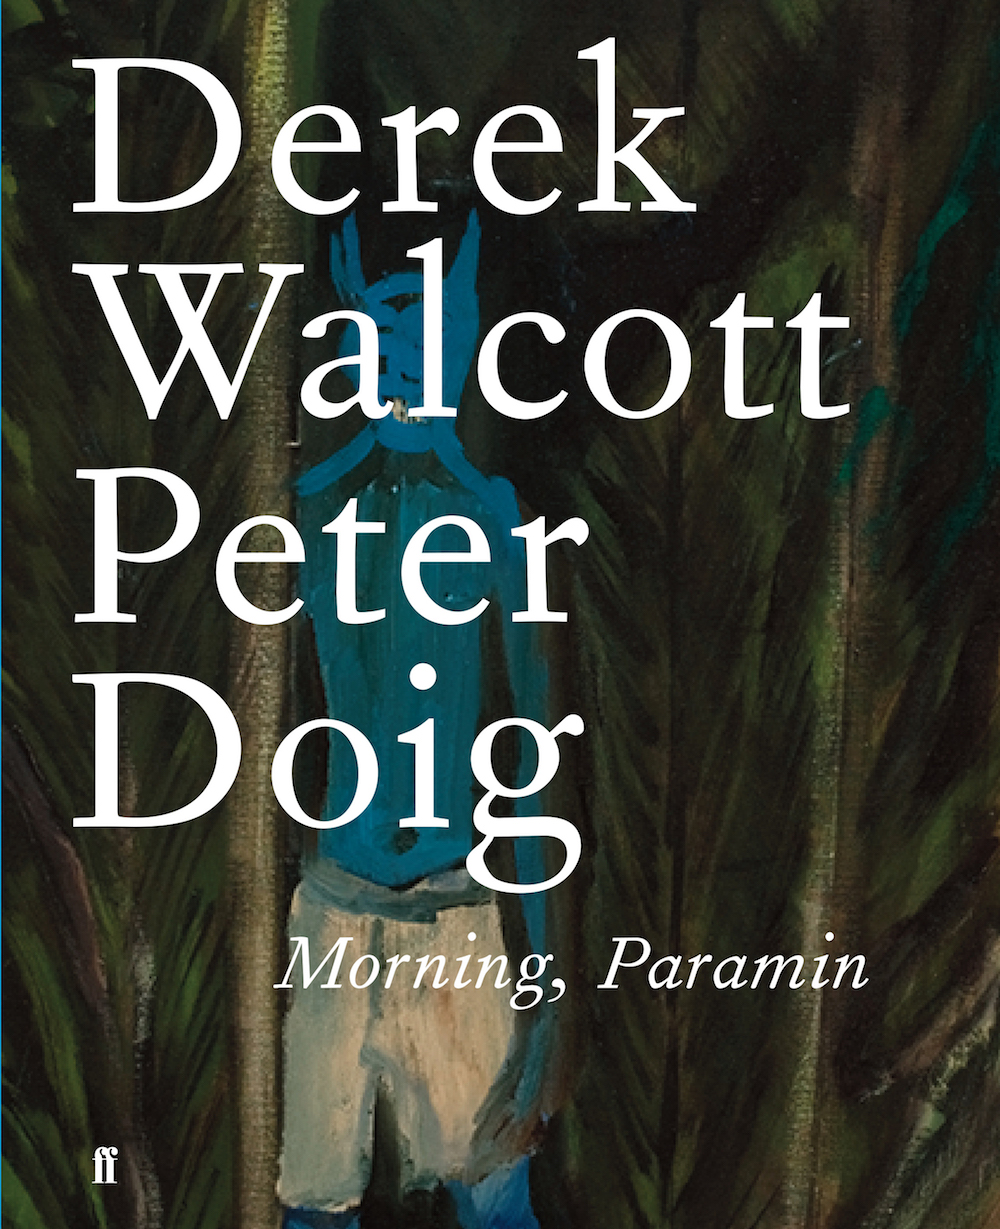 The god Derek Walcott, the Nobel-prize winning poet from St. Lucia, seems to have a lot of fun in Morning, Paramin, marrying his poignant poems to figurative paintings by Peter Doig. A dialogue that travels from the Caribbean to Edmonton, Canada, it reveals the tender pleasures and pains of loving, observing, and aging from sandy beaches to snow-capped mountains.